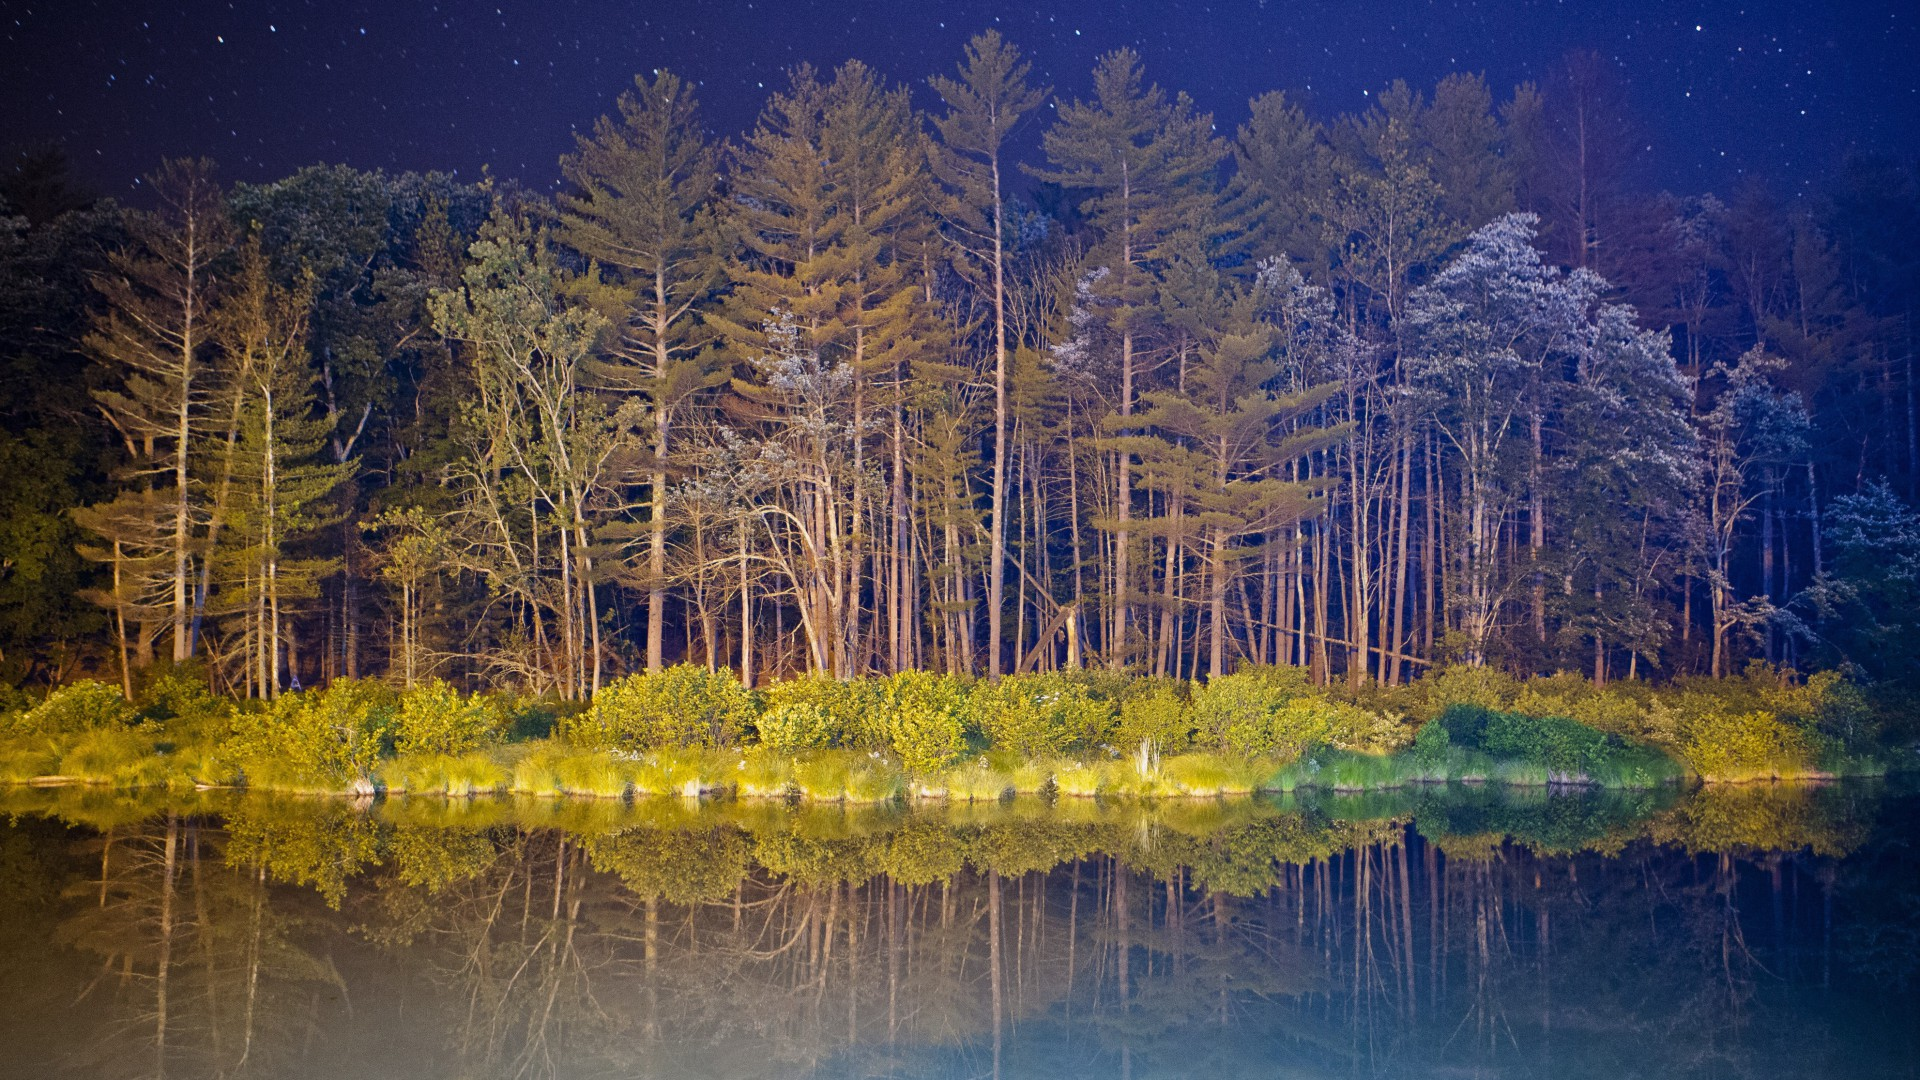 Wallpaper android 5k 4k wallpaper forest landscape night pond android 5k 4k wallpaper forest landscape night pond horizontal voltagebd Image collections